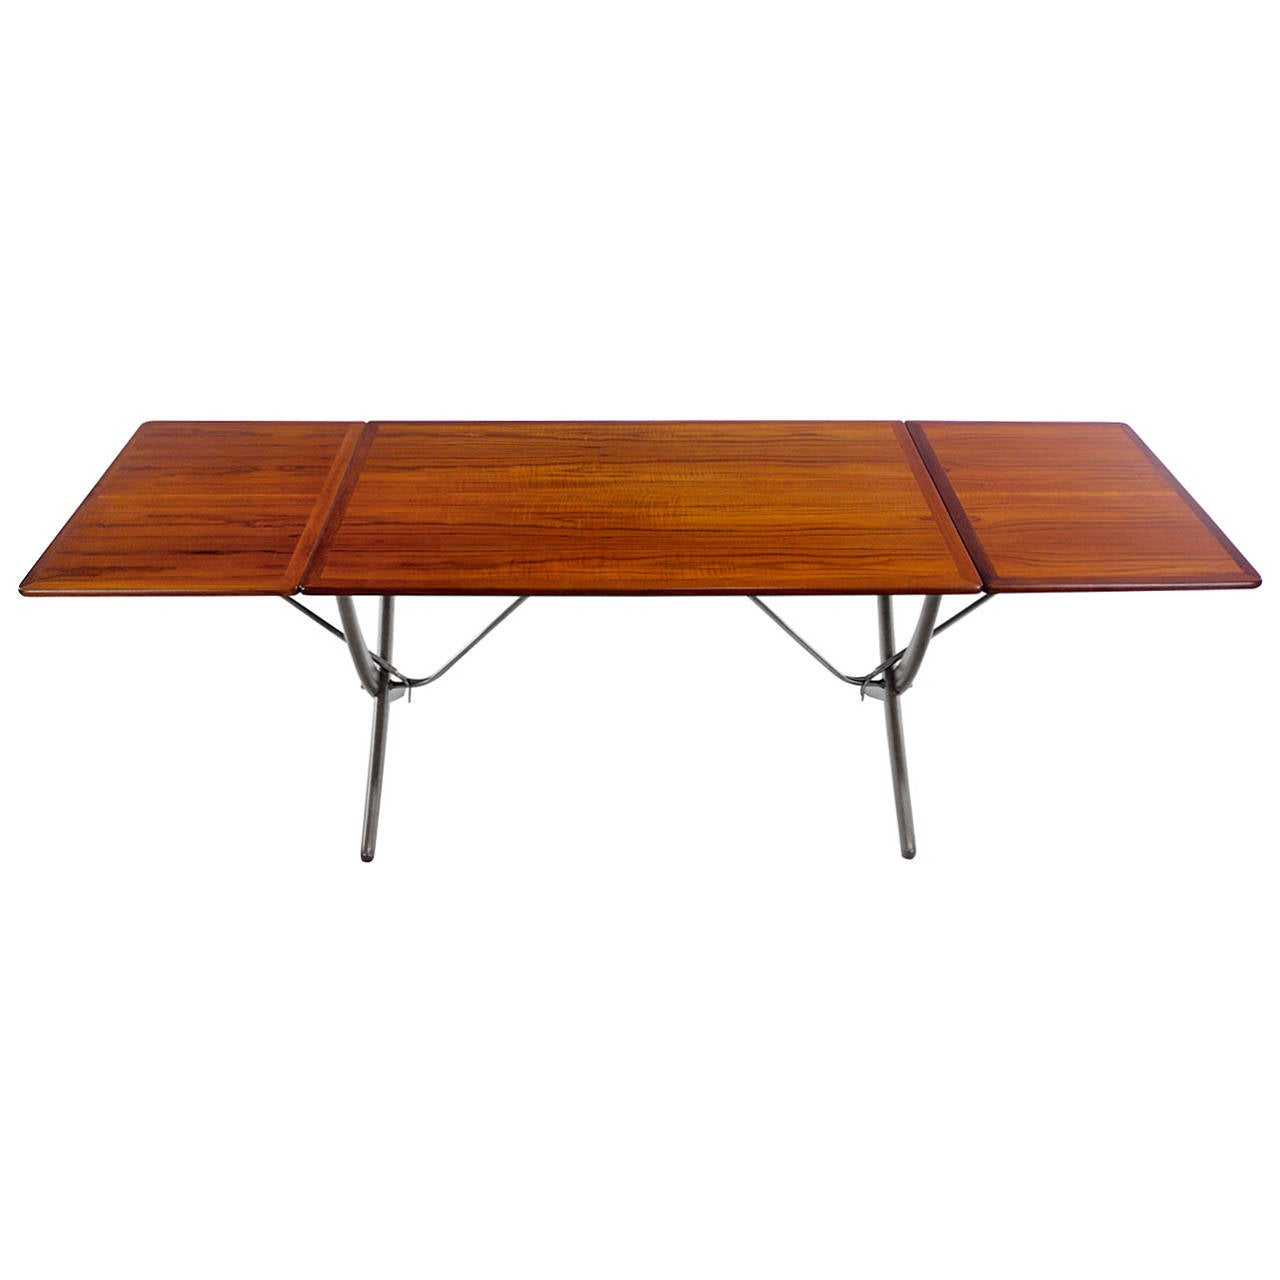 Exceptional Danish Modern Teak And Oak Drop Leaf Dining